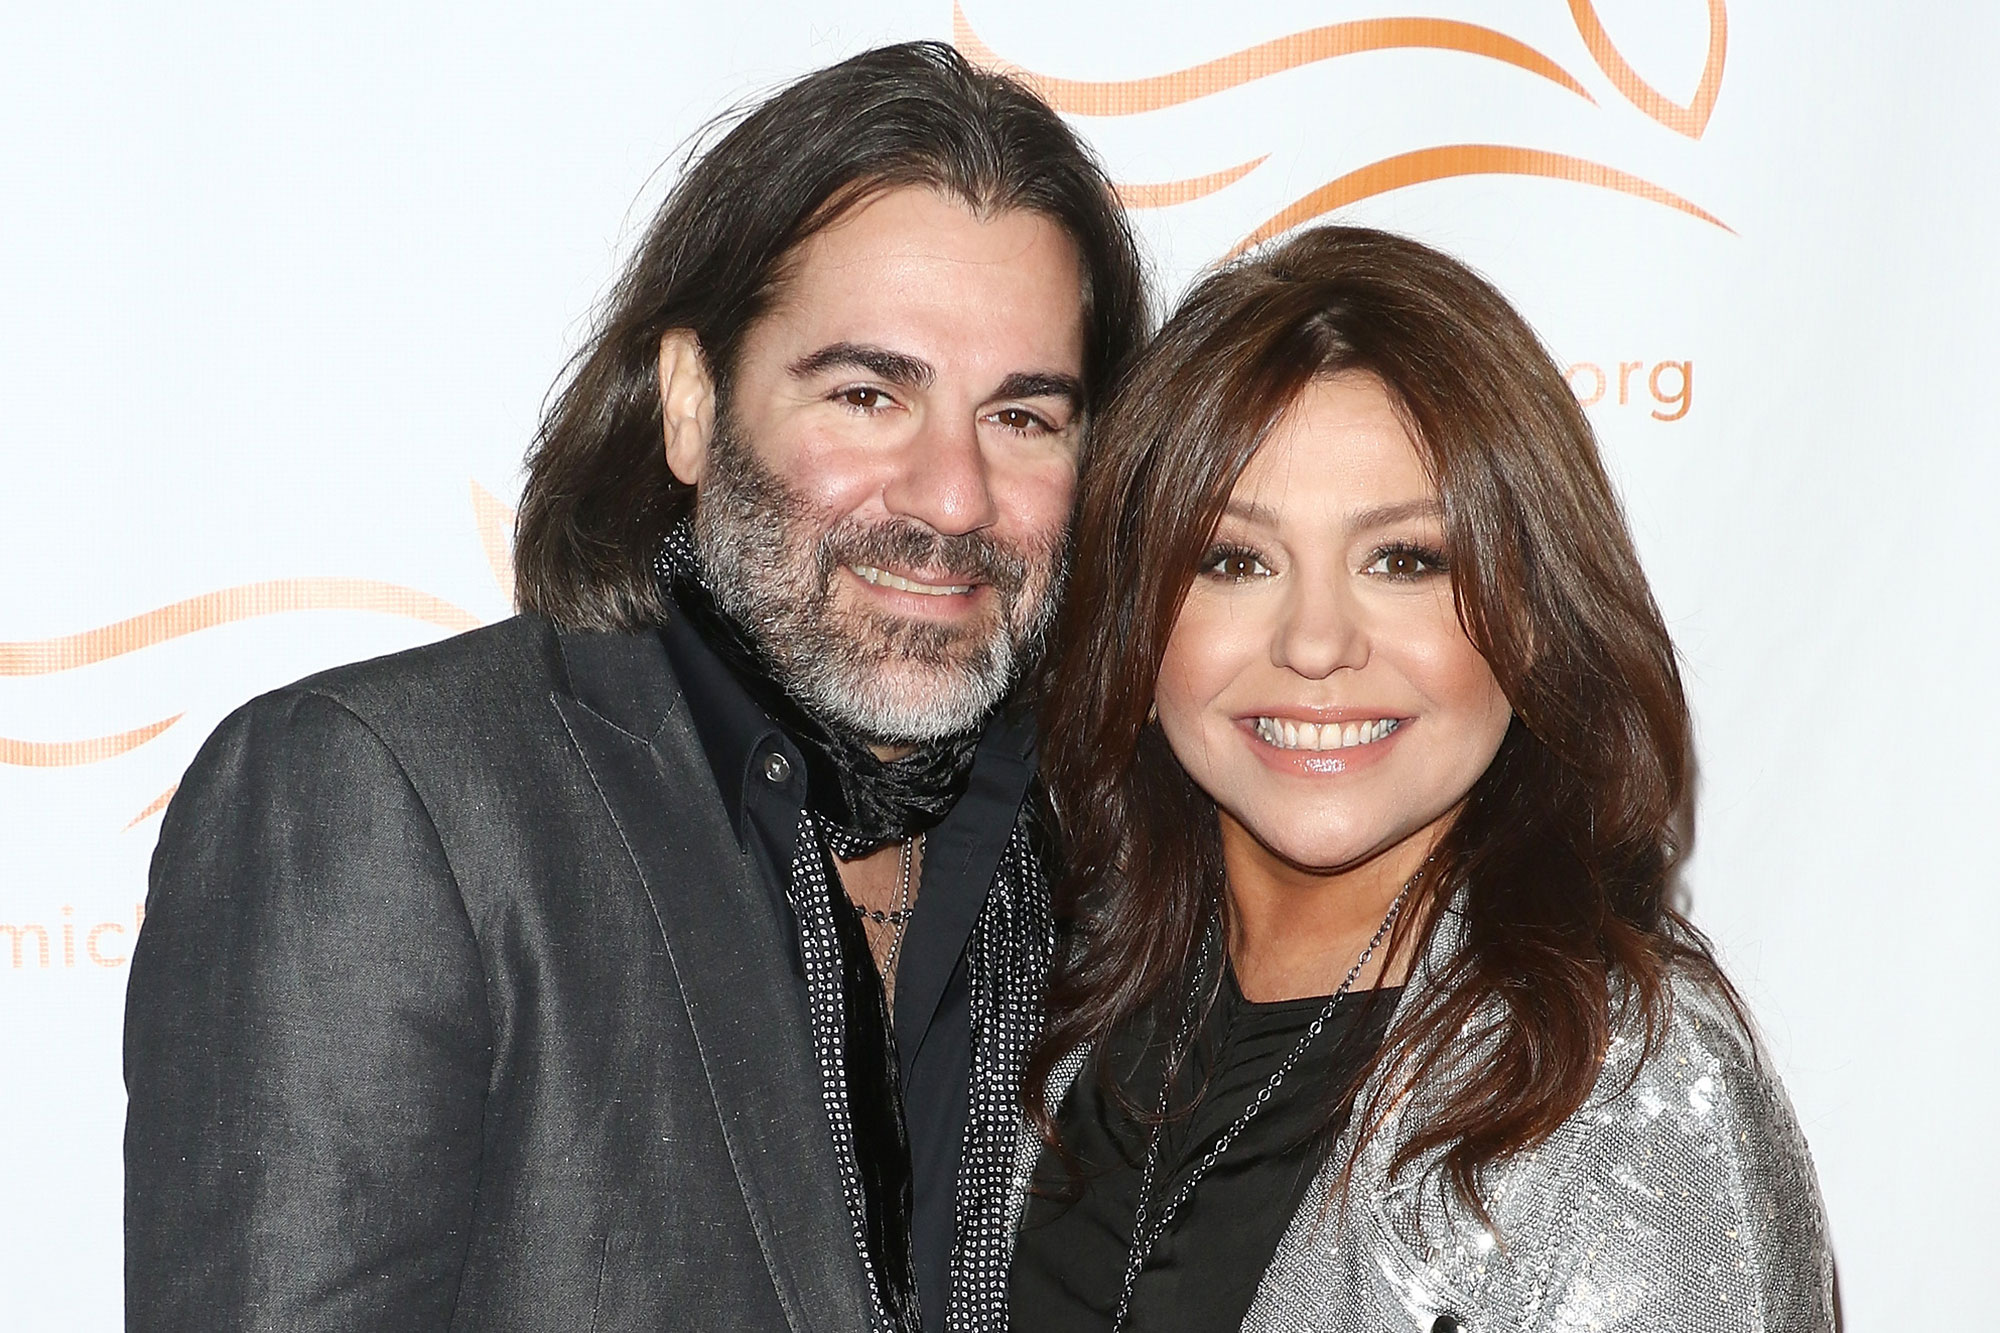 John M. Cusimano and Rachael Ray